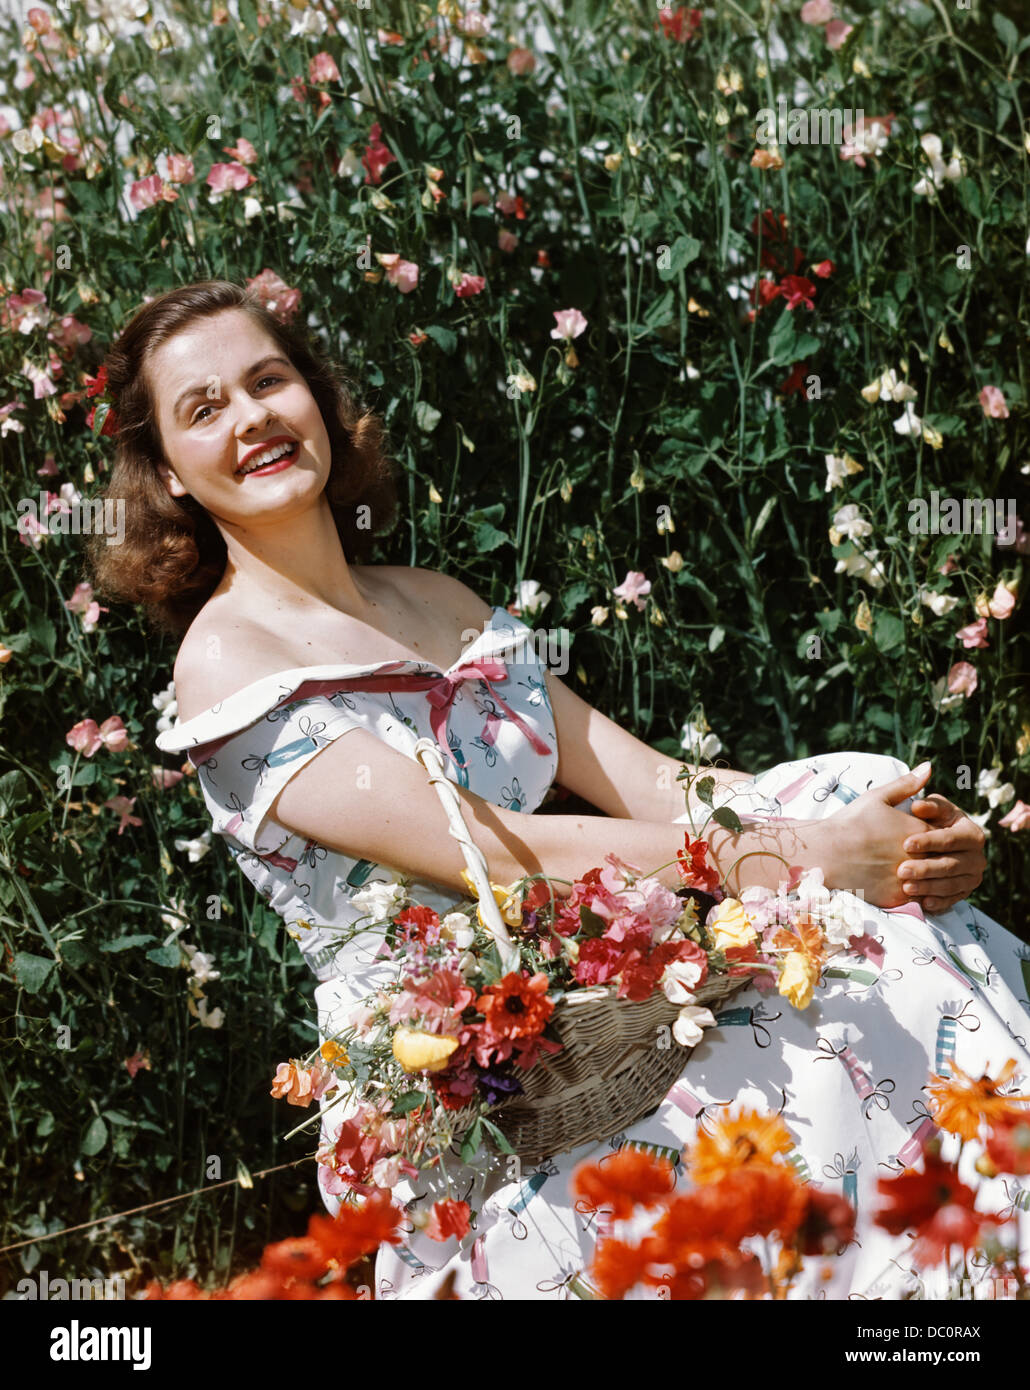 1950s SMILING WOMAN SITTING IN MEADOW HOLDING BASKET OF FLOWERS LOOKING AT CAMERA Stock Photo